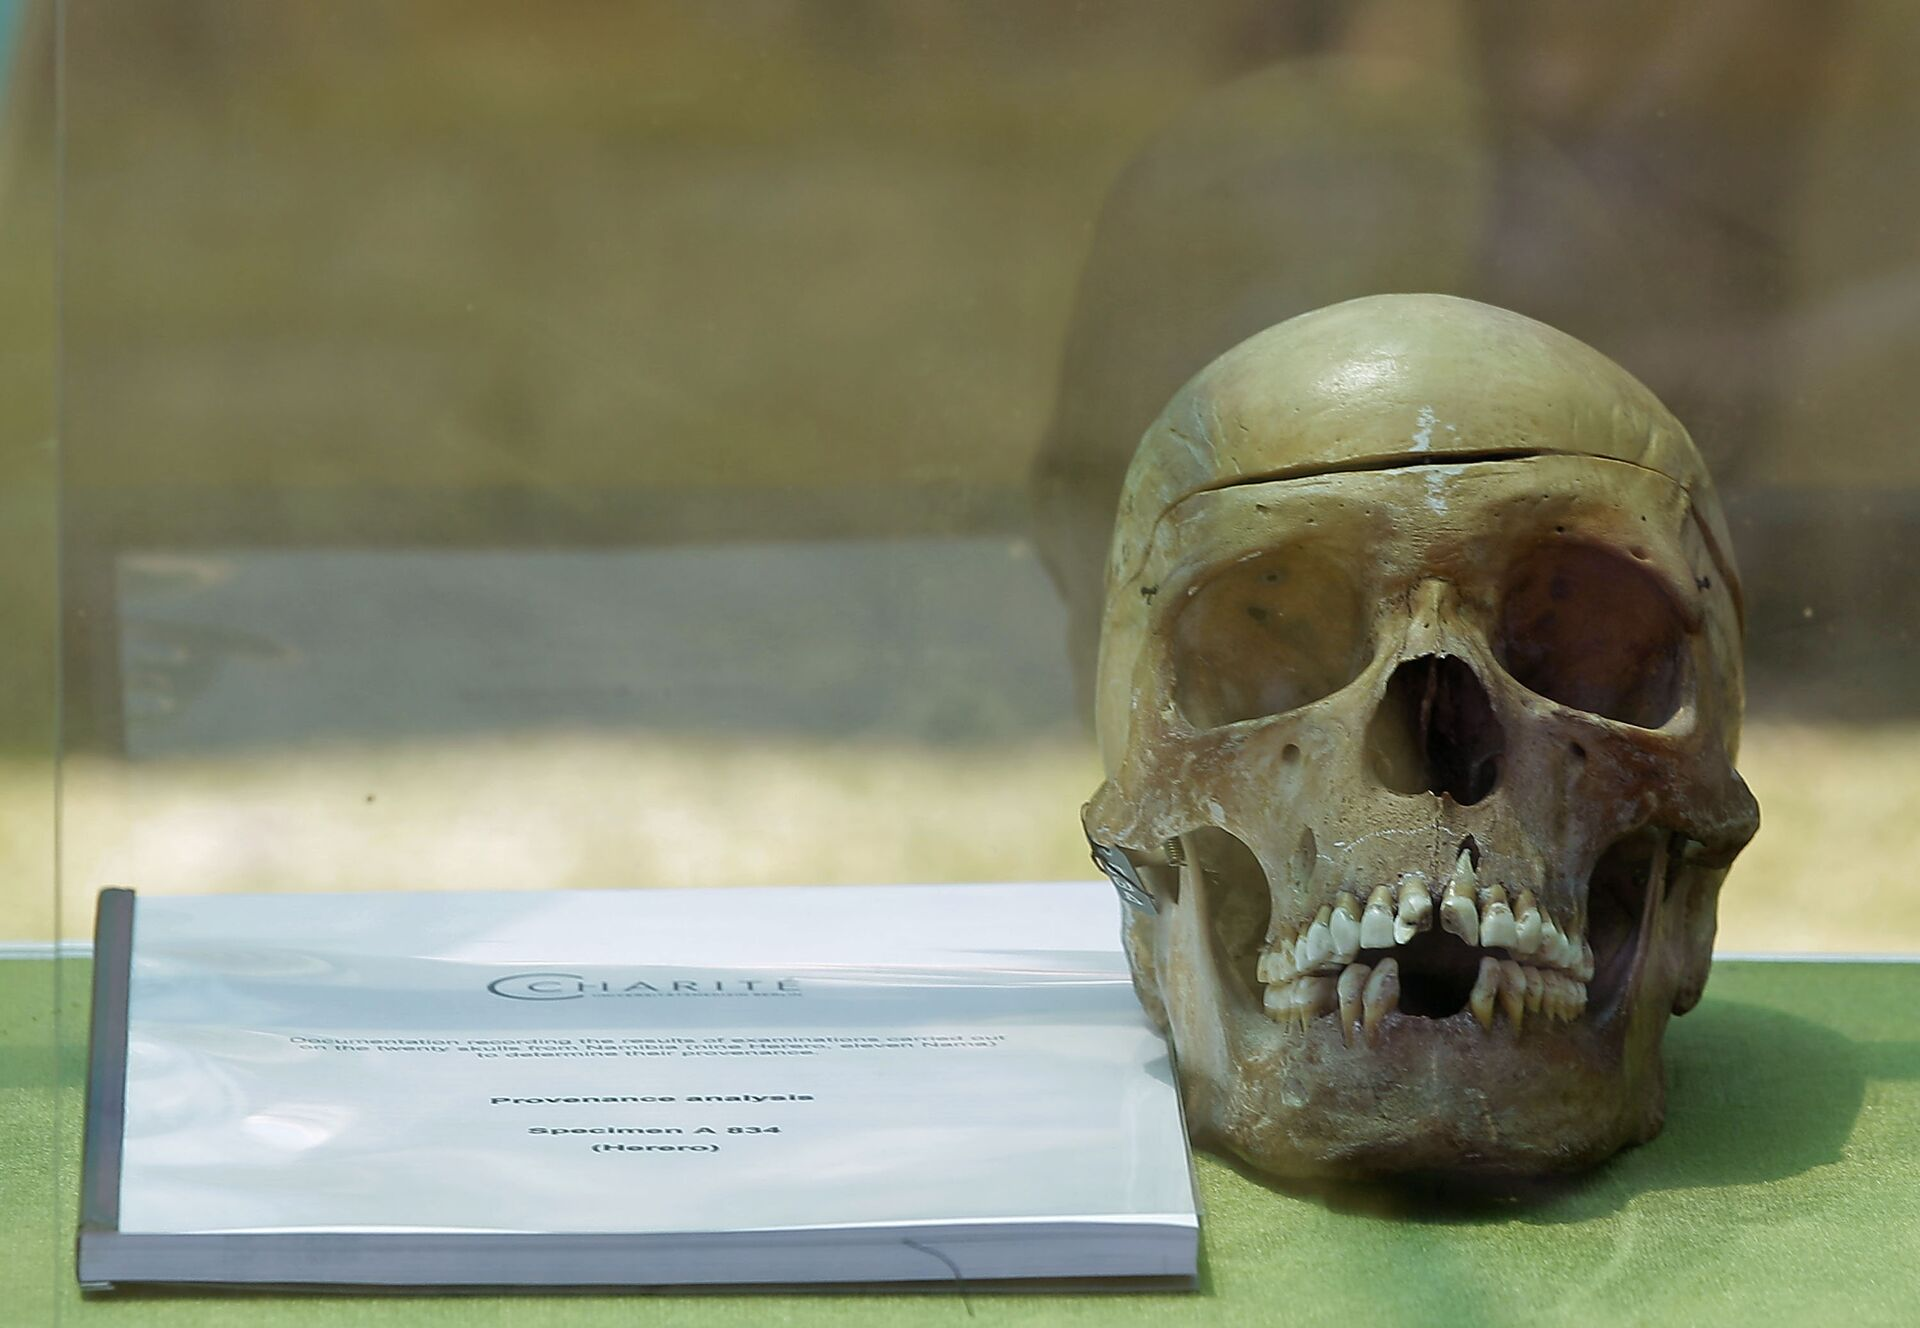 A skull from Germany on display in the city of Windhoek, Namibia, Tuesday, Oct 4, 2011. Hundreds of Namibians welcomed home the skulls of ancestors taken to Germany for racist experiments more than a century ago. The skulls are testimony to the horrors of colonialism and German cruelty against our people, Prime Minister Nahas Angula said at an airport ceremony, The Namibian nation accepts these mortal remains as a symbolic closure of a tragic chapter. - Sputnik International, 1920, 23.09.2021